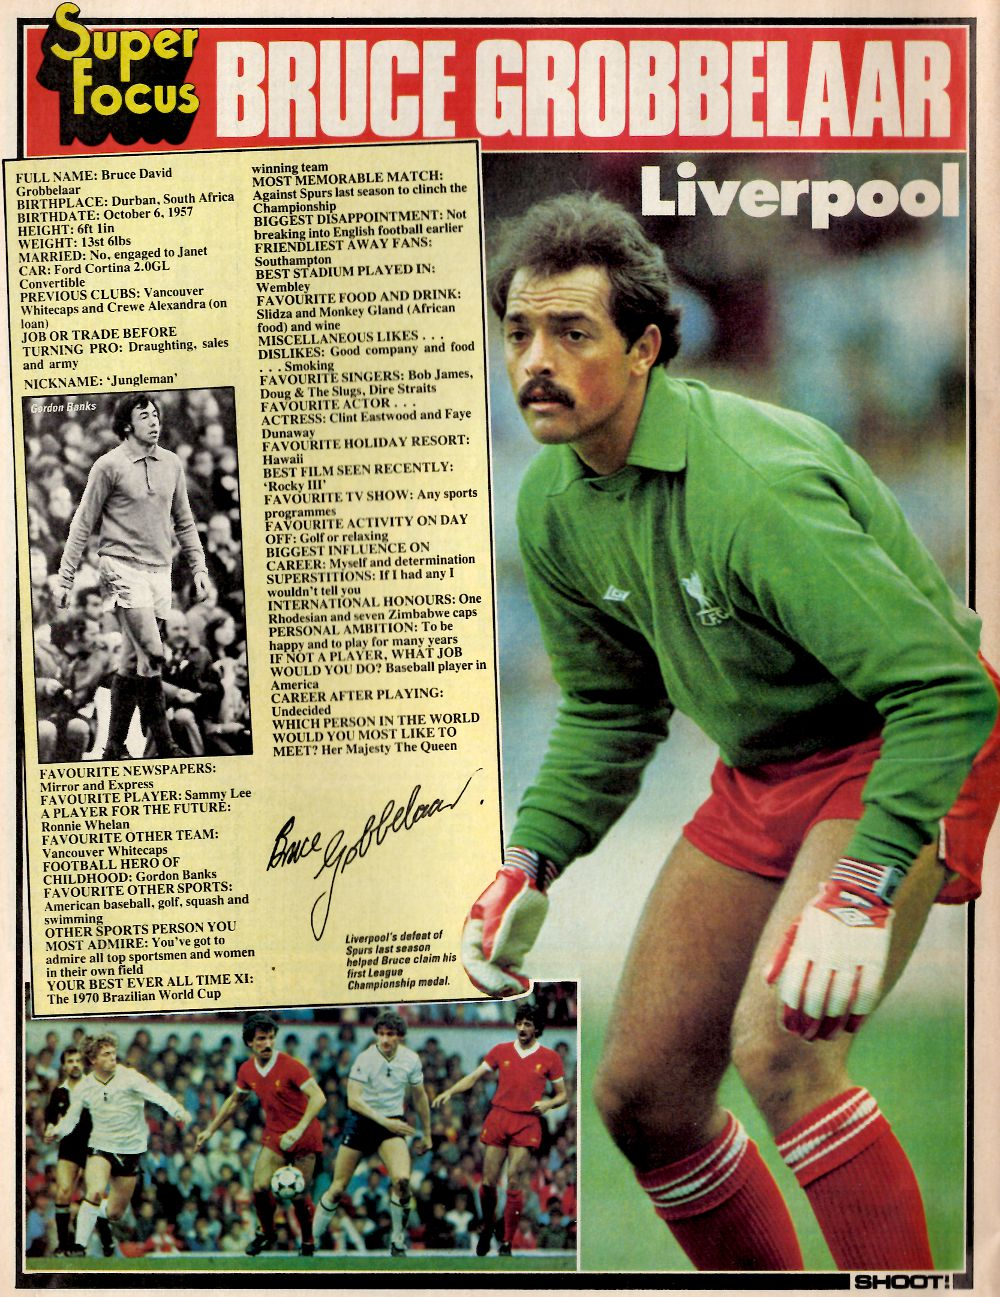 Super focus on Bruce Grobbelaar